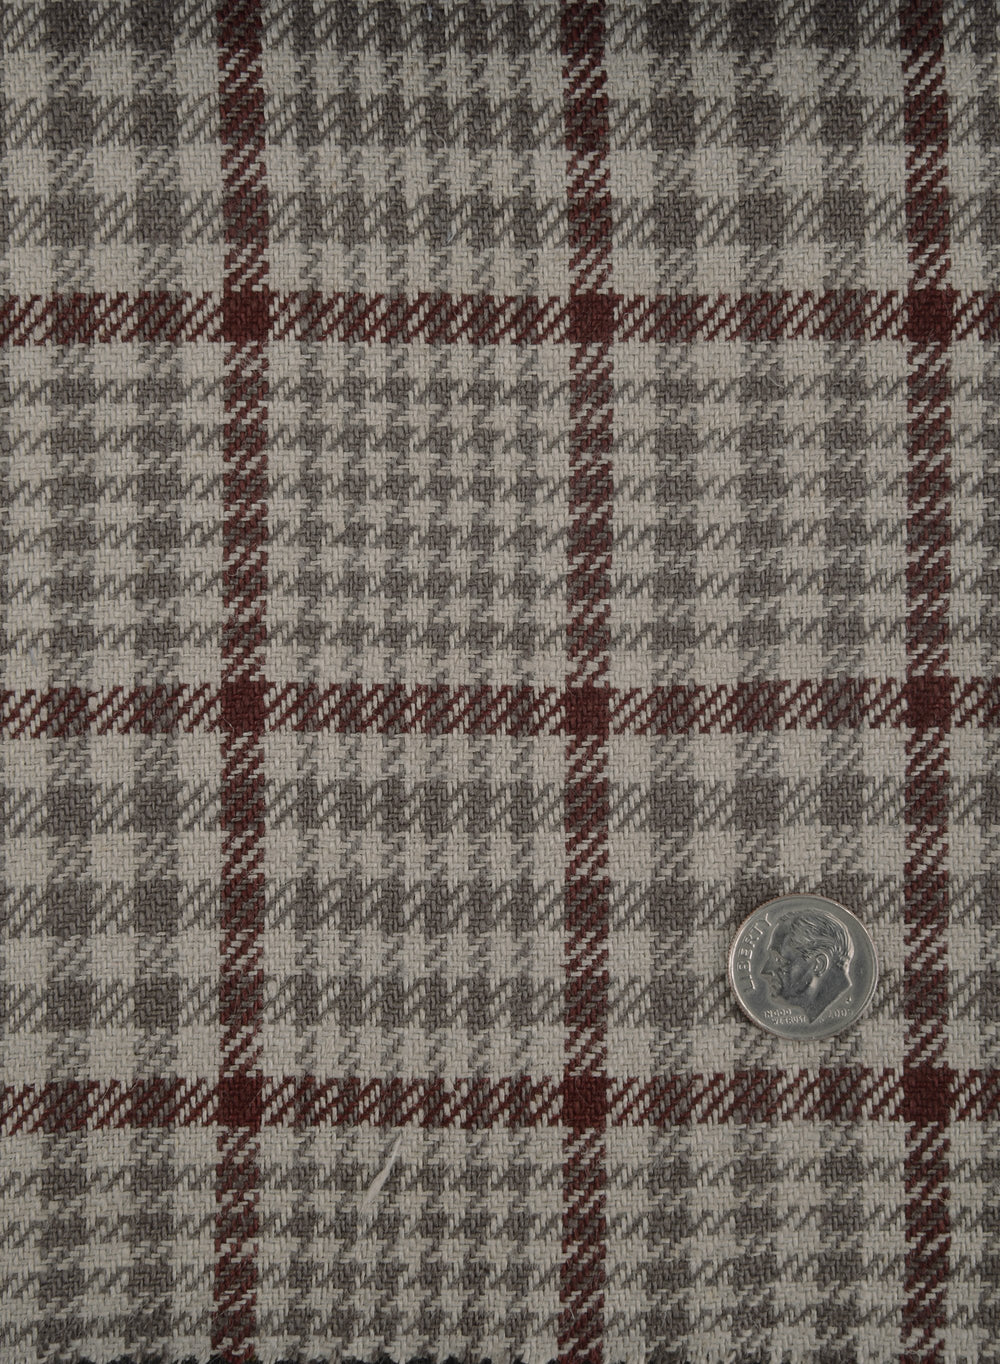 Dugdale Beige Lt Brown Check With Burgundy Overcheck